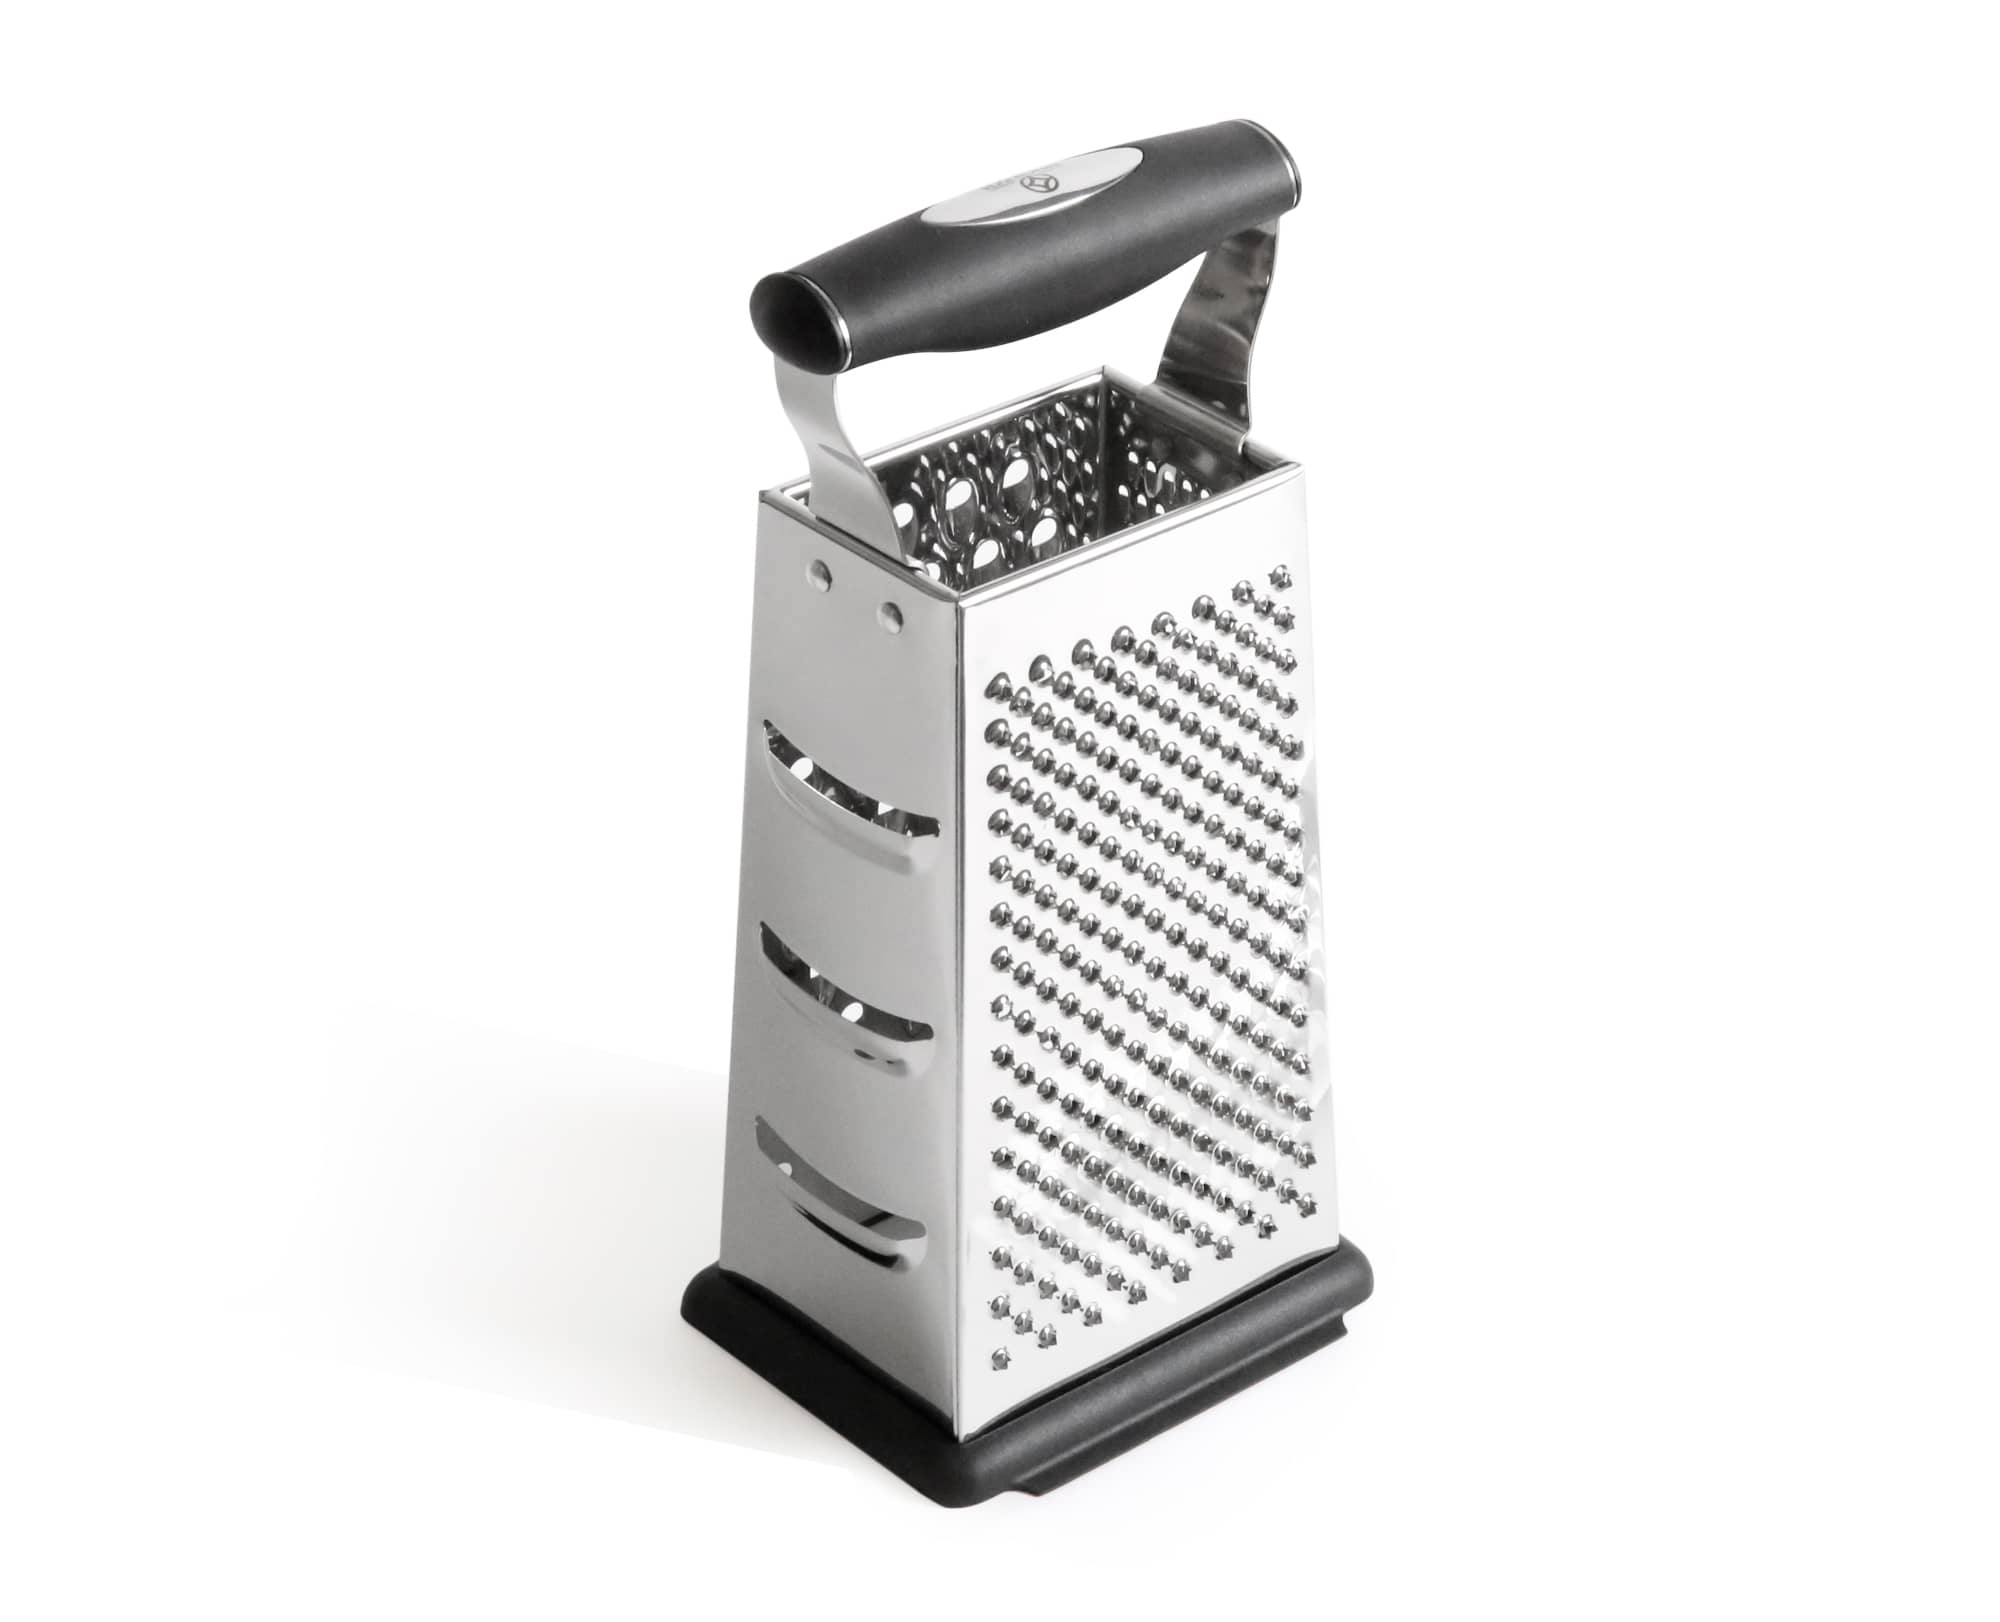 Benchusch 4 Sided Grater Box, black color with stainless steel blade, Non-Slip Base and Ergonomic Handle